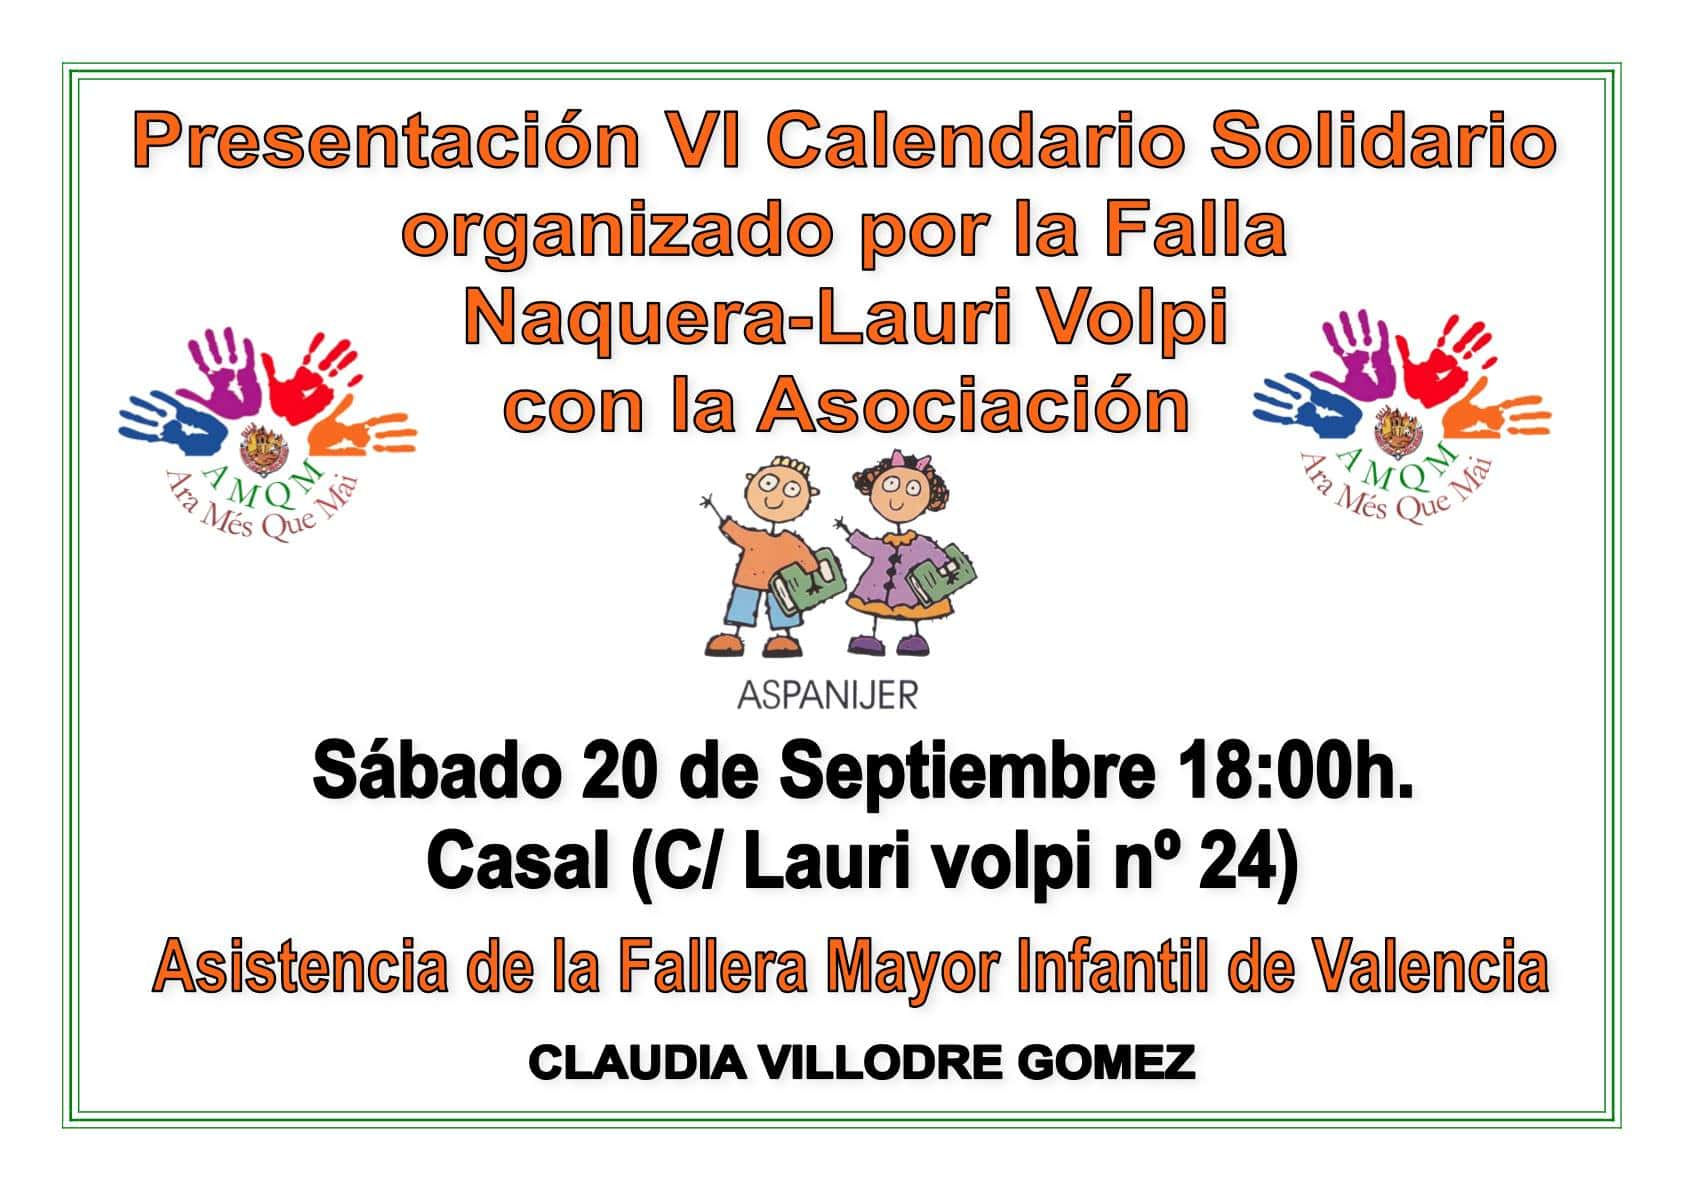 I saw solidarity calendar organized by the Falla Naquera Lauri Volpi 1